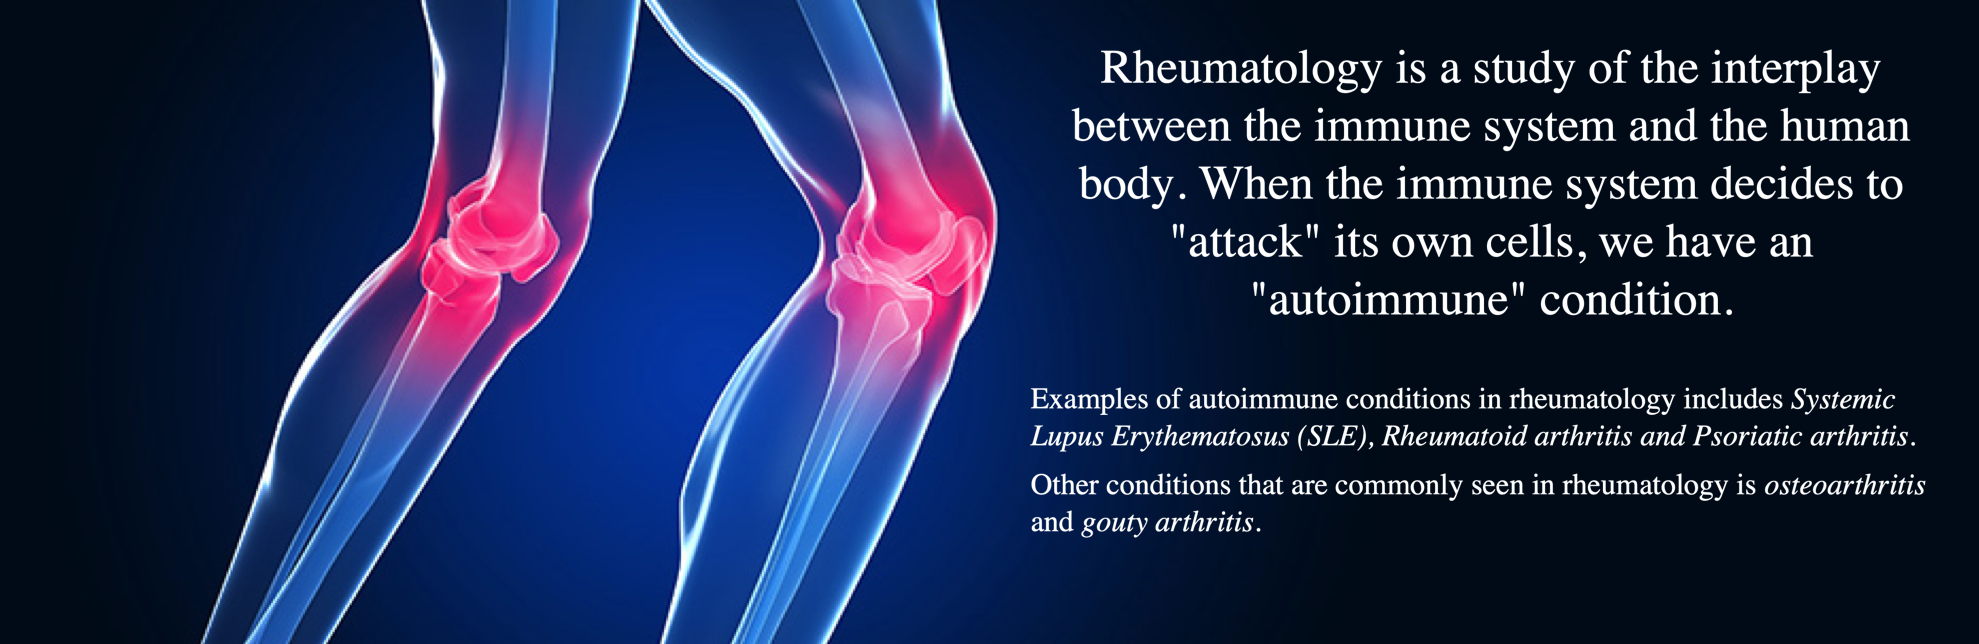 Rheumatology is a study of the interplay between the immune system and the human body. When the immune system decides to